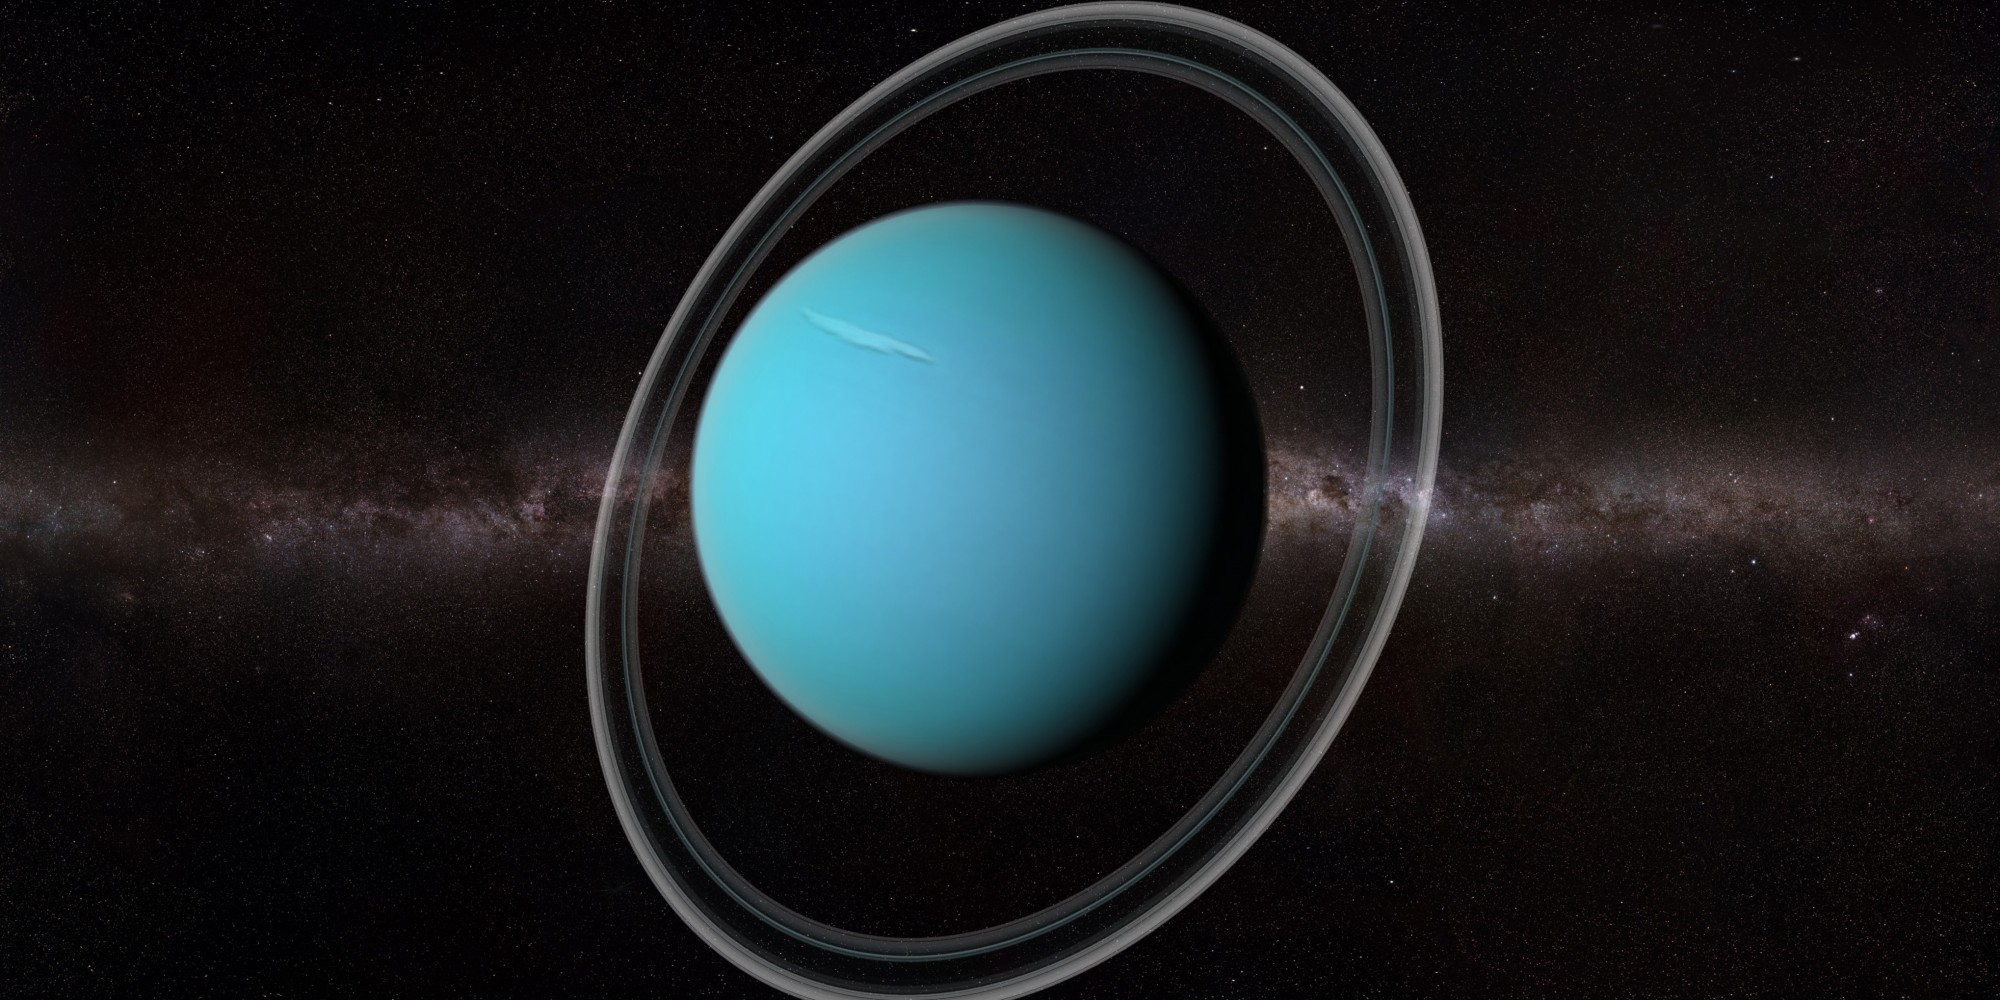 3d Solar System Live Wallpaper For Android Astronomers Spot First Ice Giant Outside Our Solar System